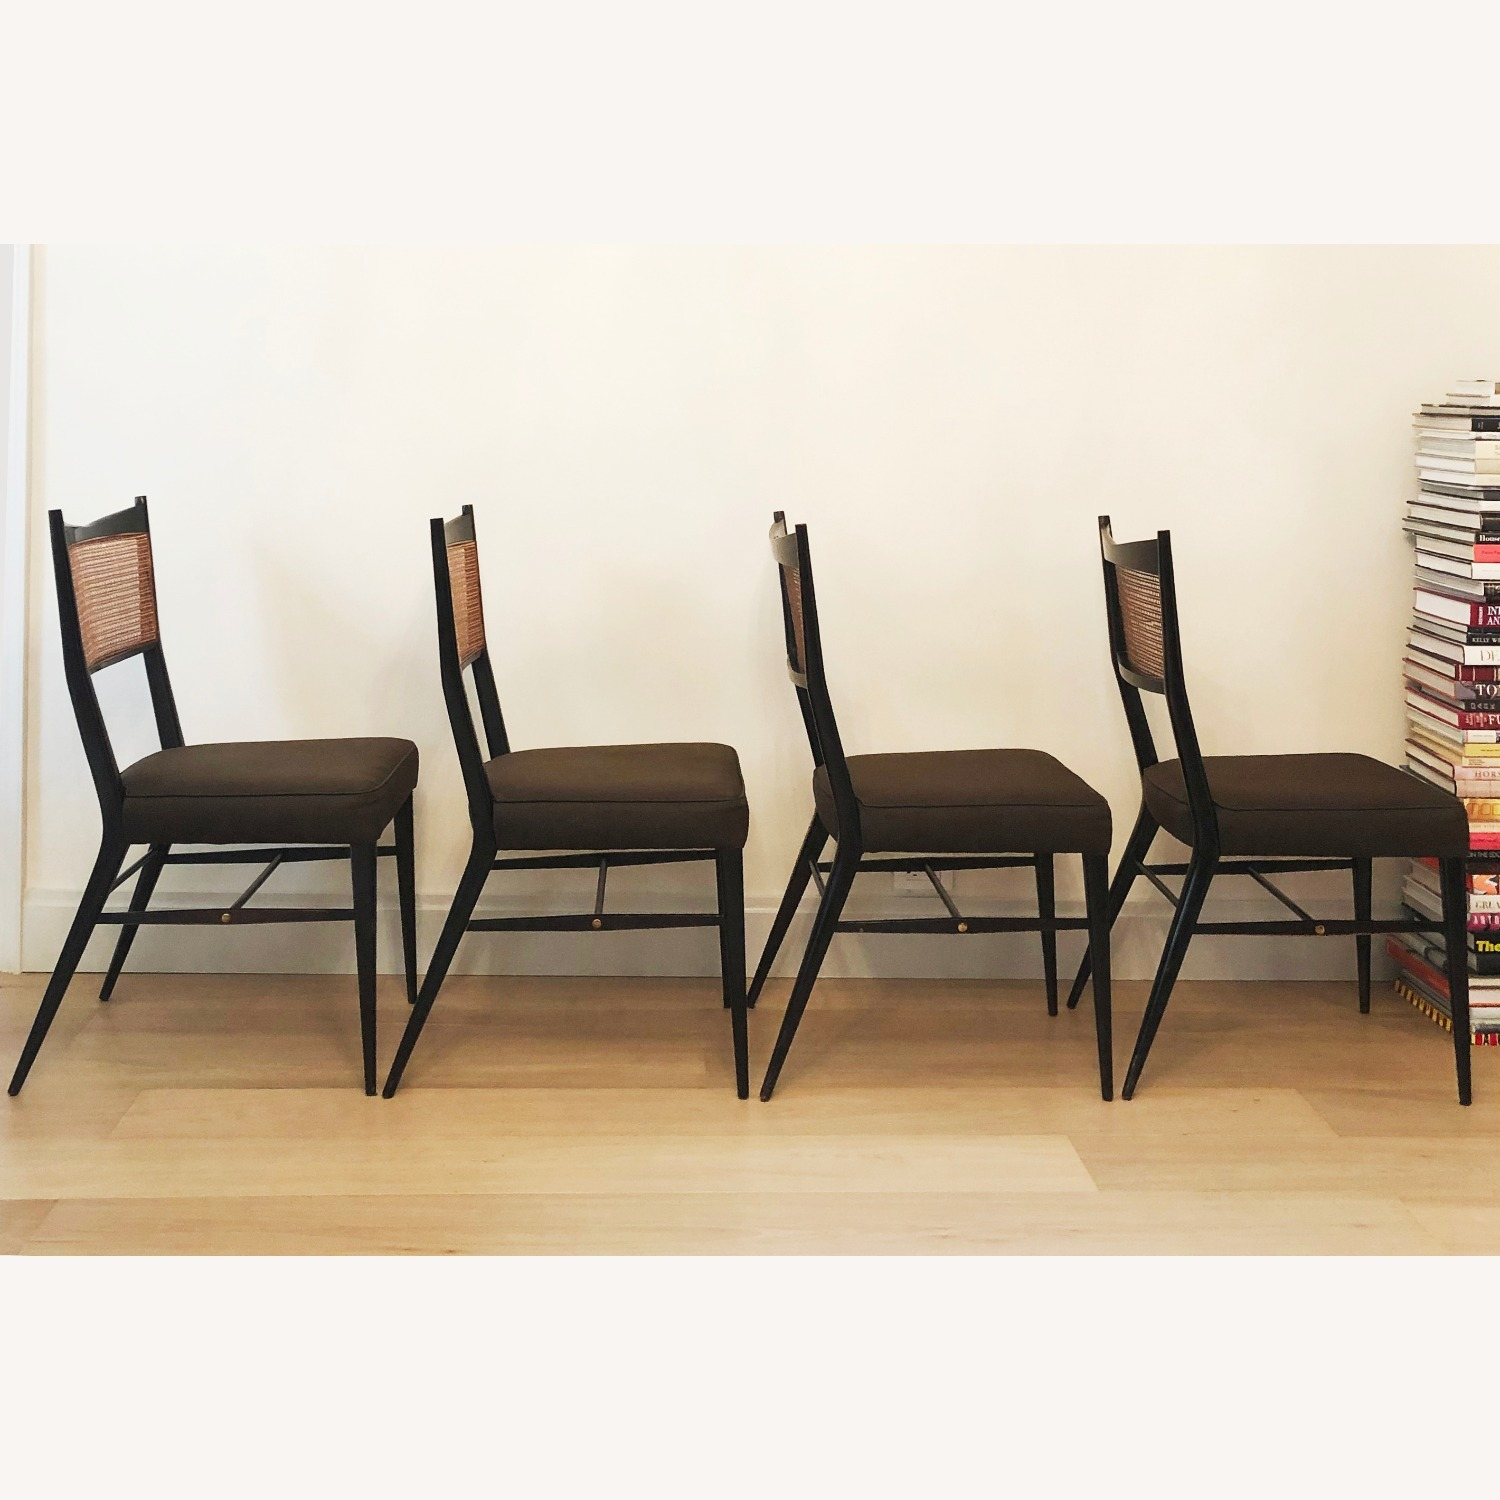 Paul McCobb Irwin Collection 4 Dining Chairs - image-13